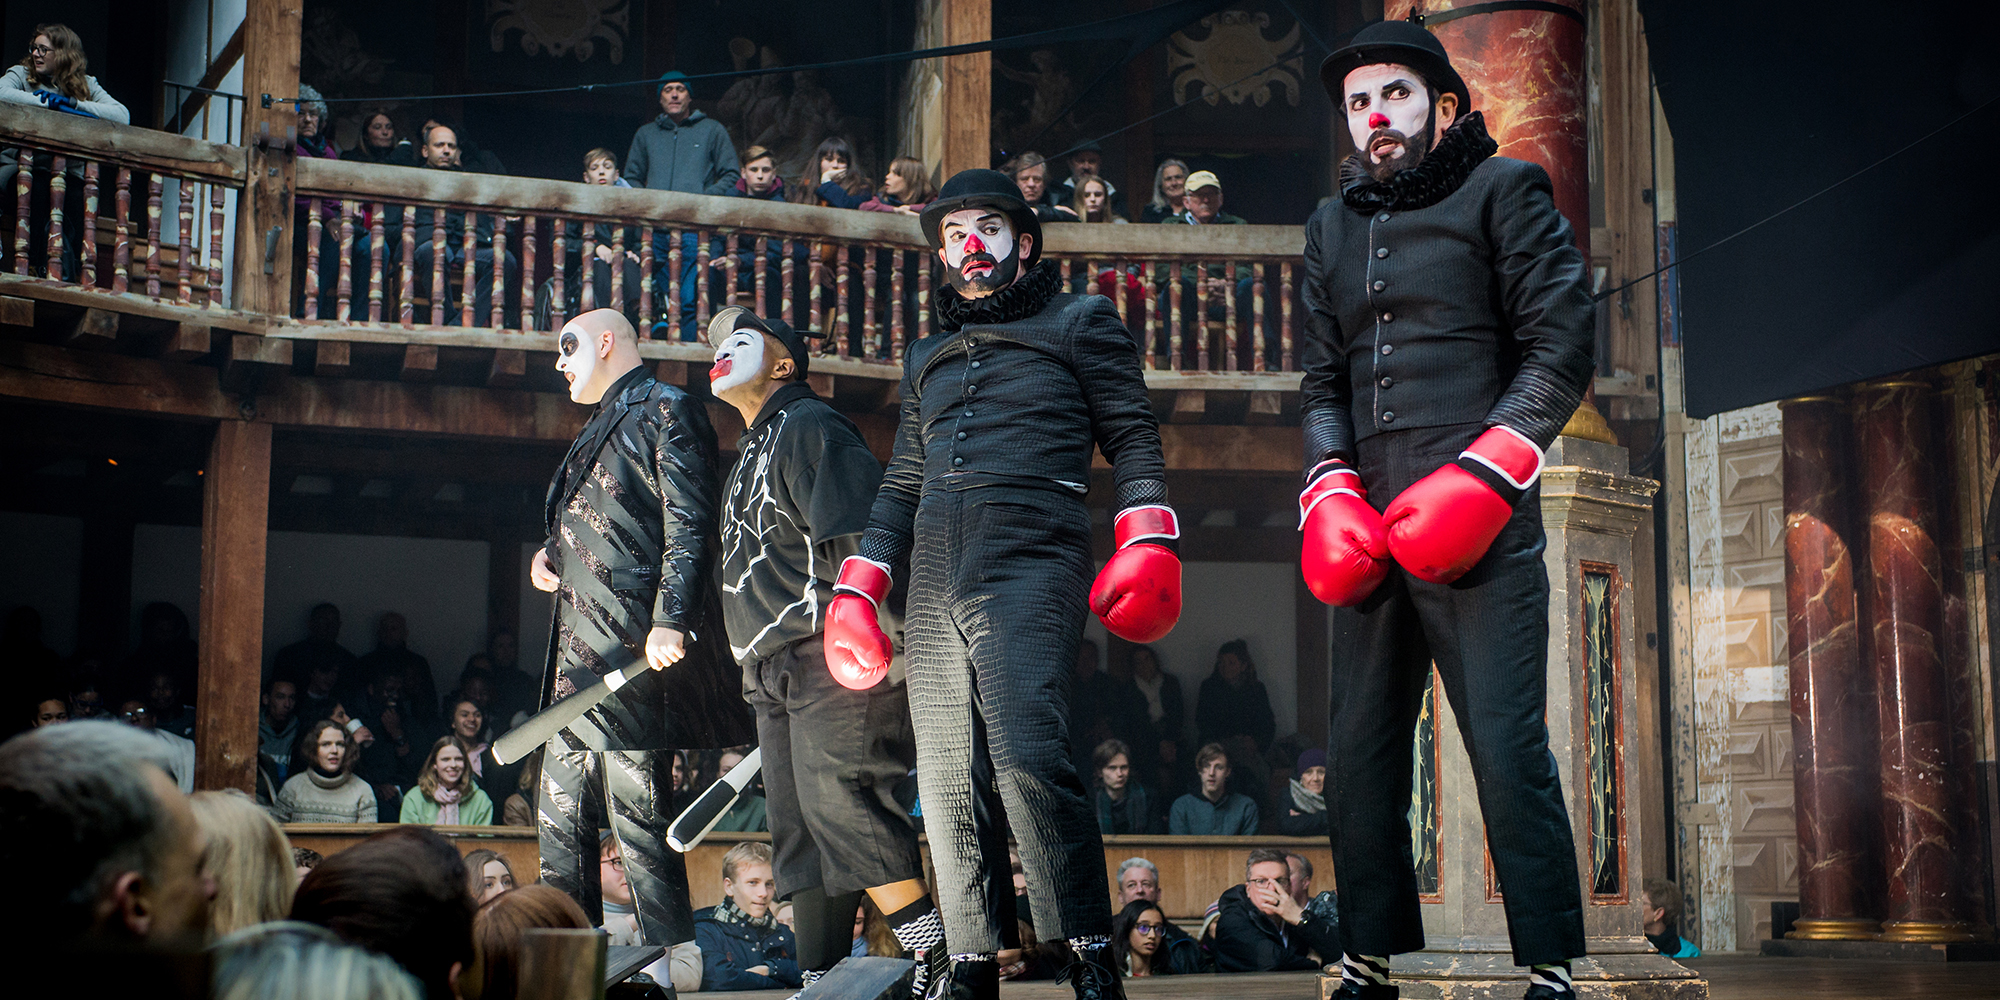 Four people wearing black, in clown makeup, and wearing red boxing gloves.